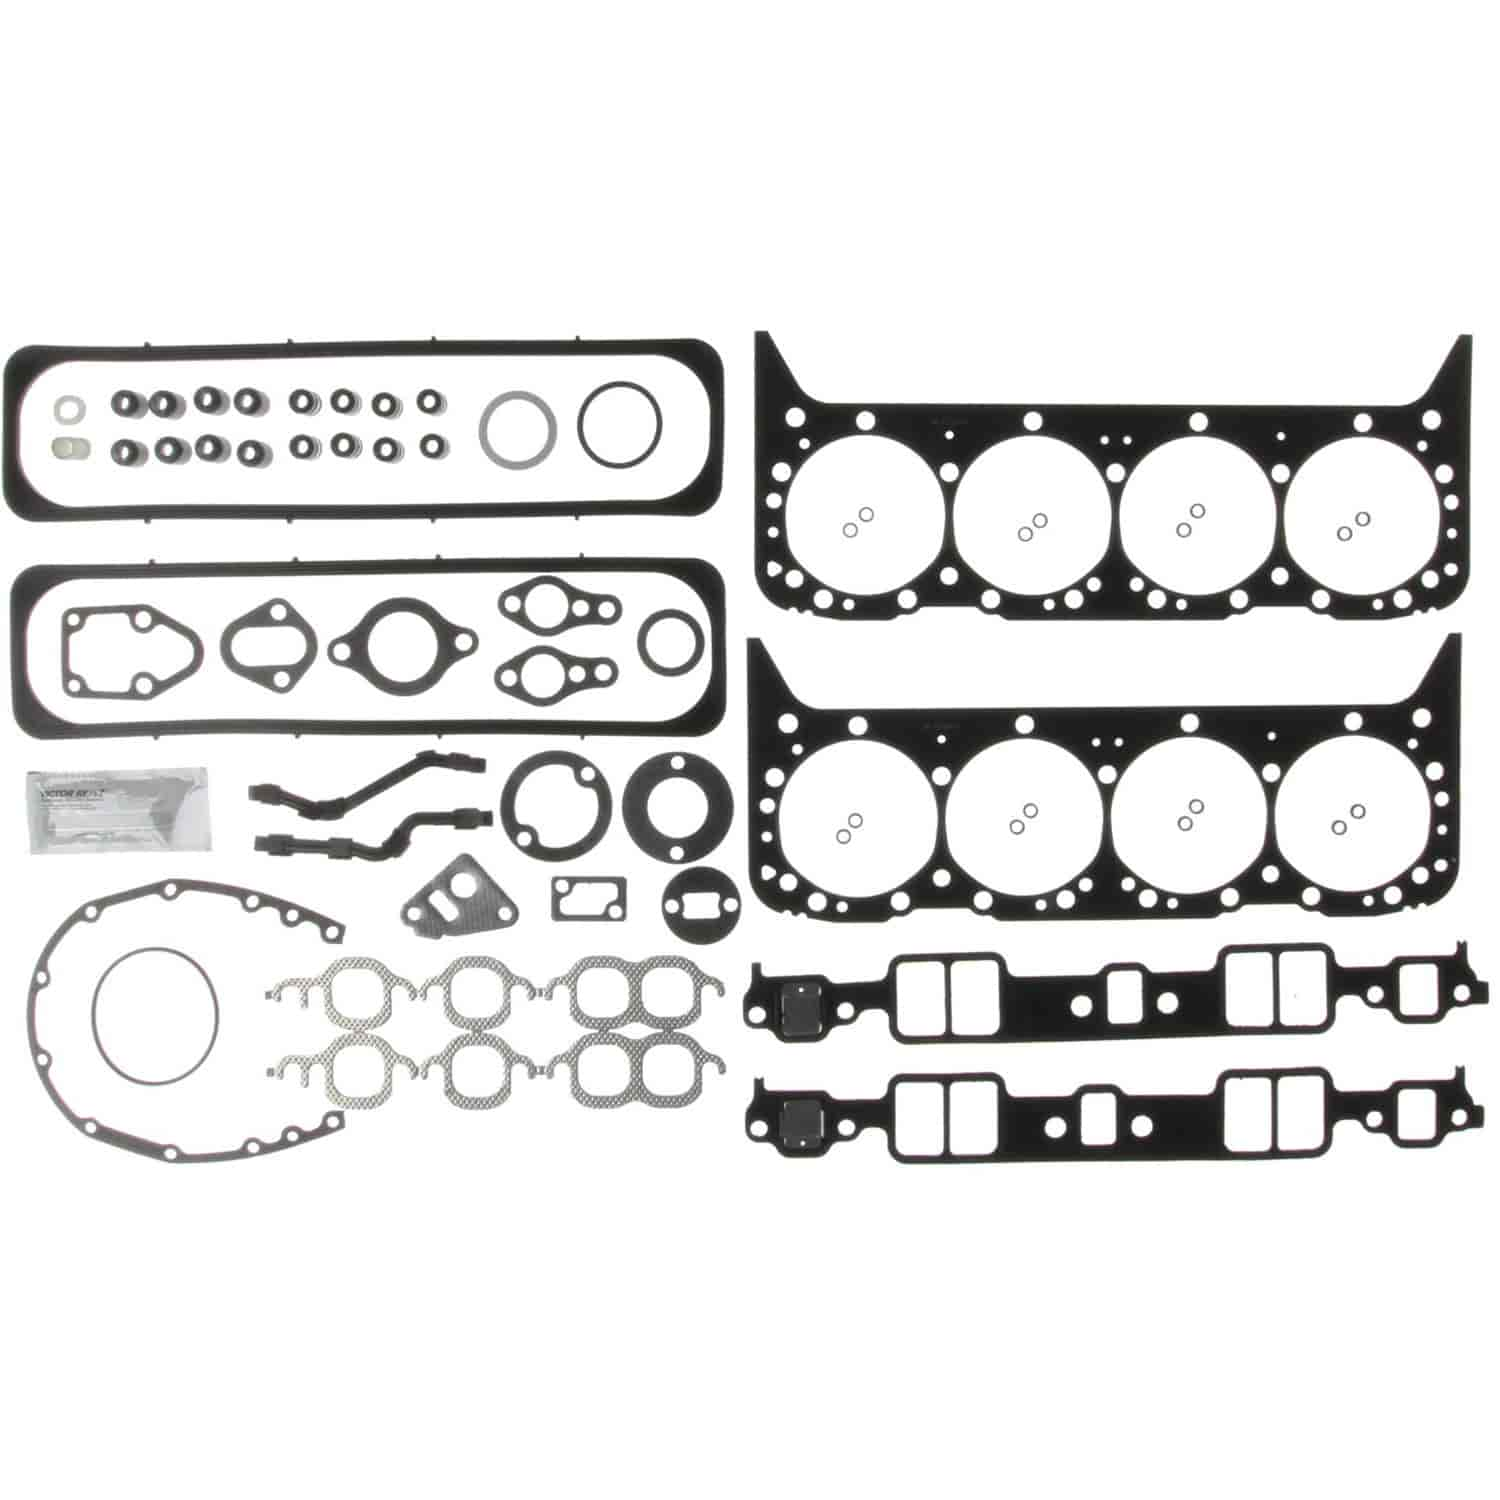 Clevite Mahle Hs Vn Head Gasket Set Chevy